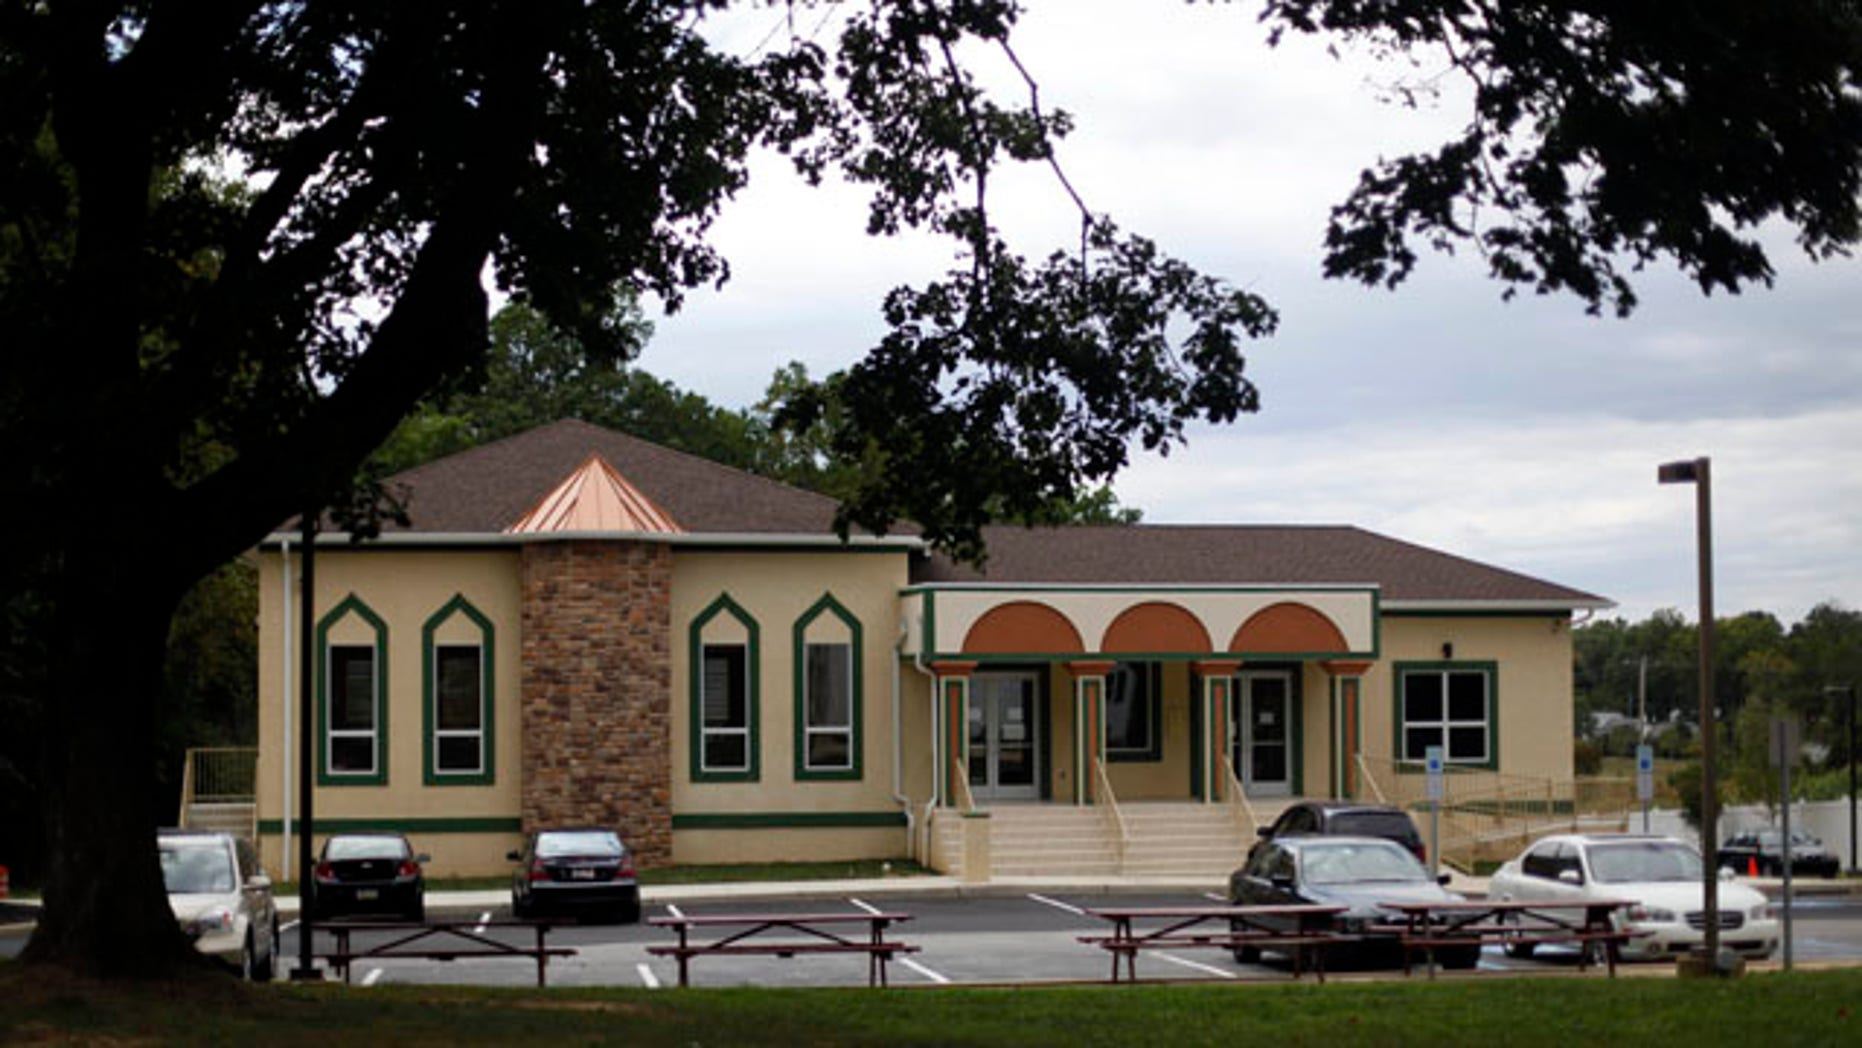 September 9: Islamic Society of Greater Valley Forge mosque is seen in Berwyn, Pa. Amid a tense national climate for U.S. Muslims, leaders of the Islamic Society of Greater Valley Forge only seek continued harmony with their neighbors: a Jewish synagogue next door and Baptist Church across the street. (AP)